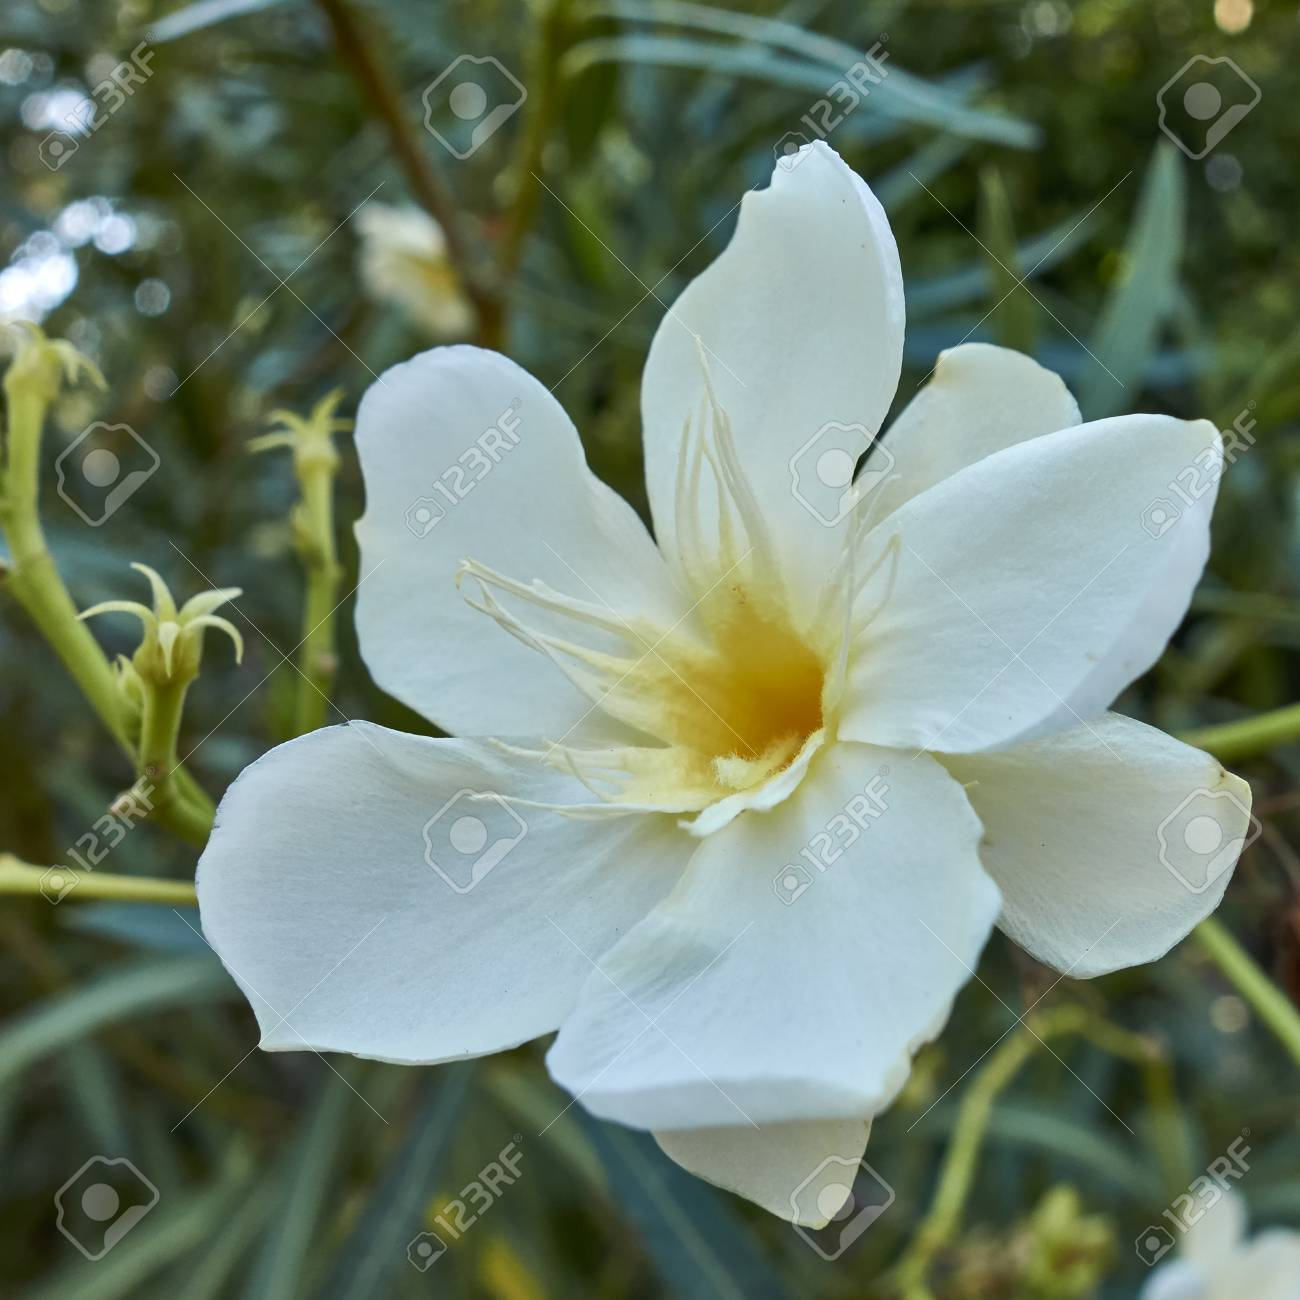 One White Oleander Flower Close Up In The Garden Stock Photo Picture And Royalty Free Image Image 50832030